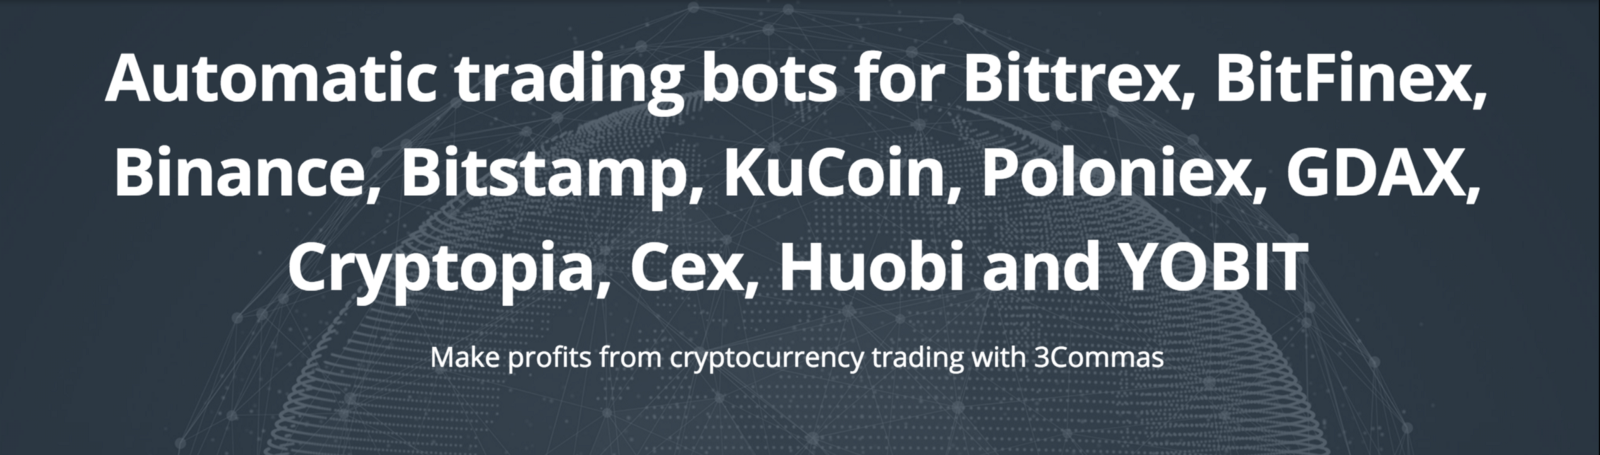 Bittrex Review Hitbtc Bots